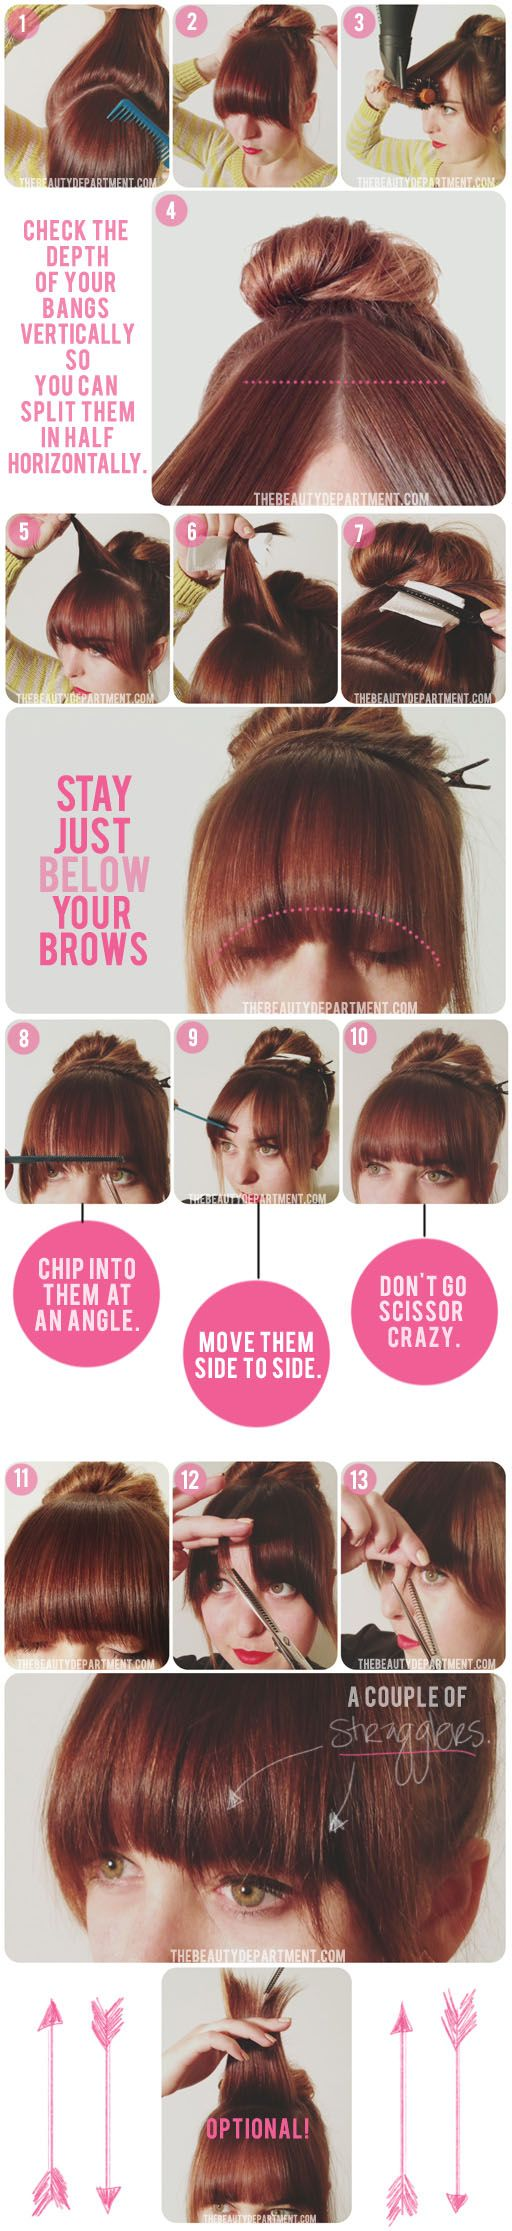 The Beauty Department: Your Daily Dose of Pretty. - AT-HOME BANG TRIM (IF YOU MUST!)